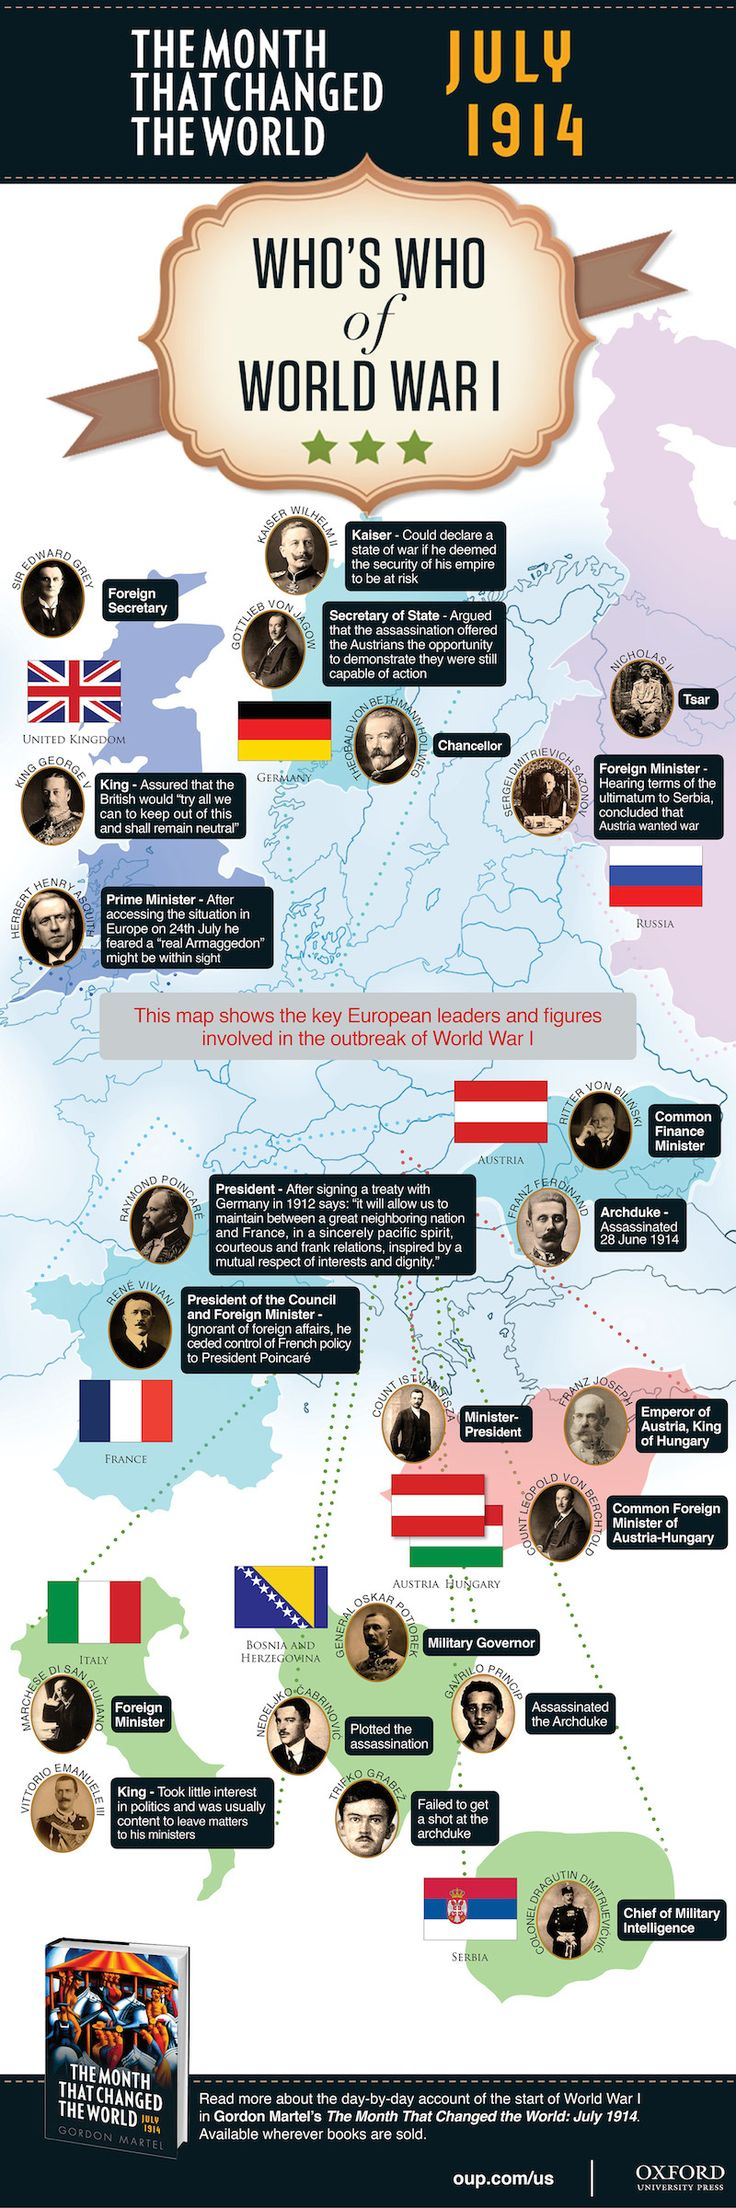 Who is who in World War 1